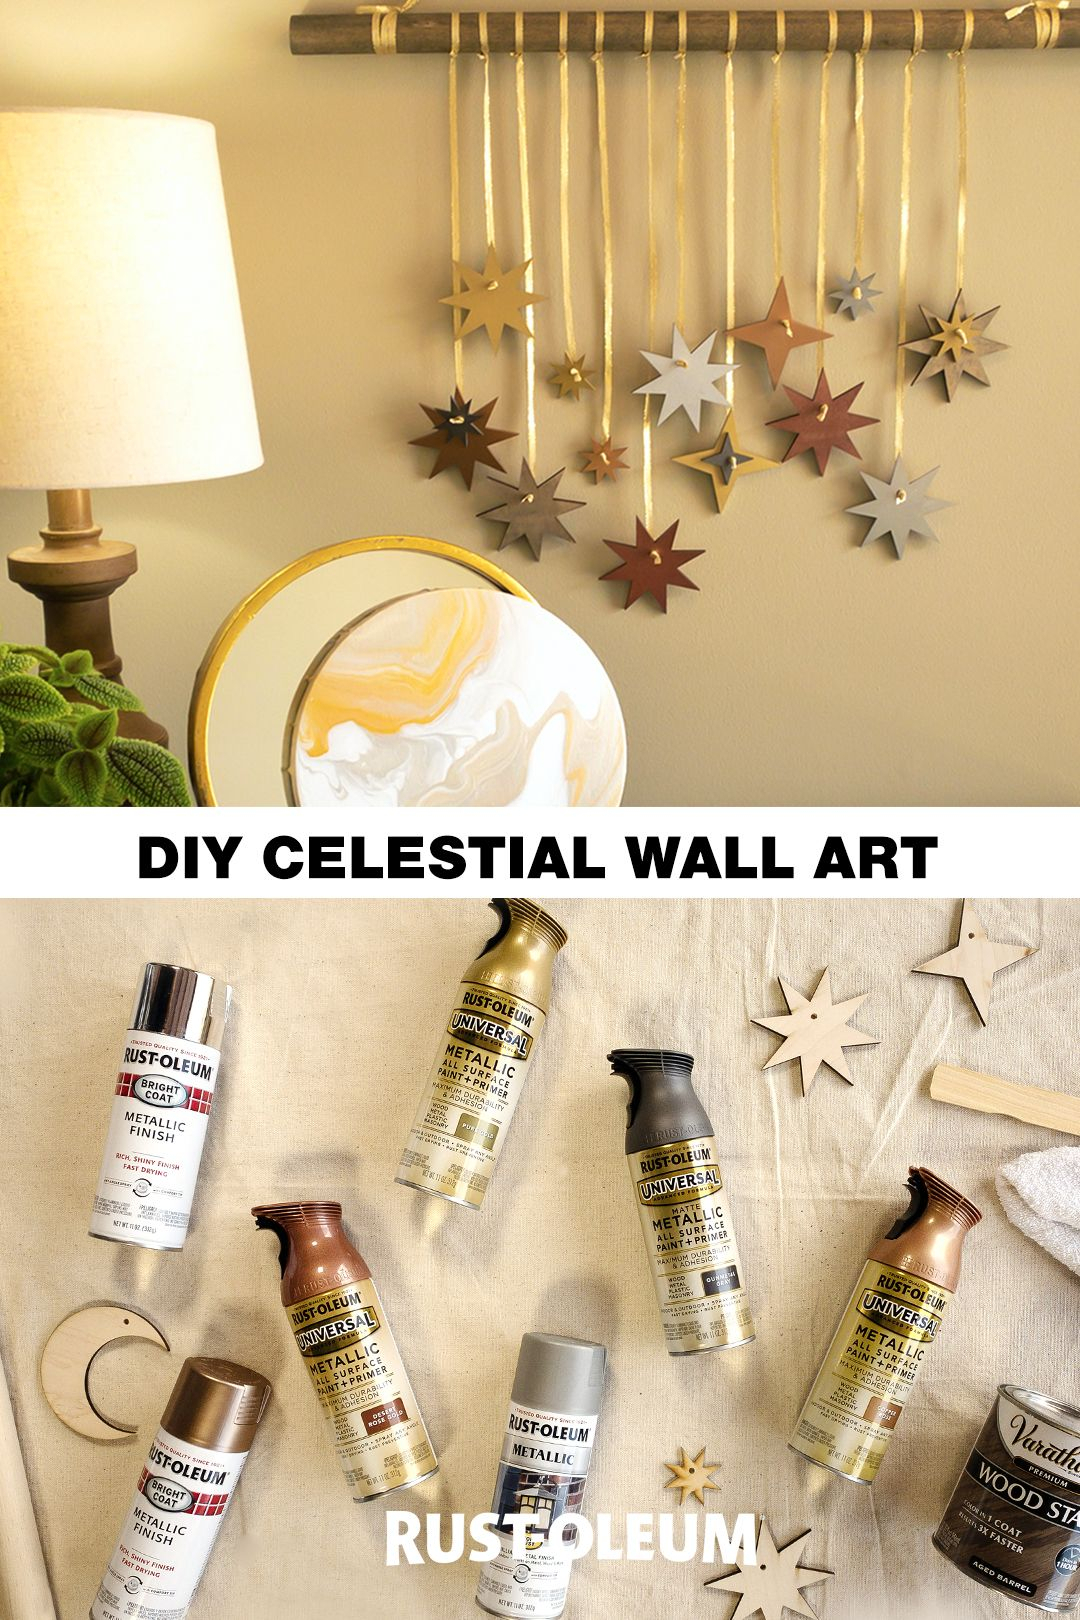 Diy Celestial Wall Art | Diy Decor Projects, Diy Crafts, Crafts With Regard To Newest Blended Fabric Celestial Wall Hangings (set Of 3) (View 18 of 20)